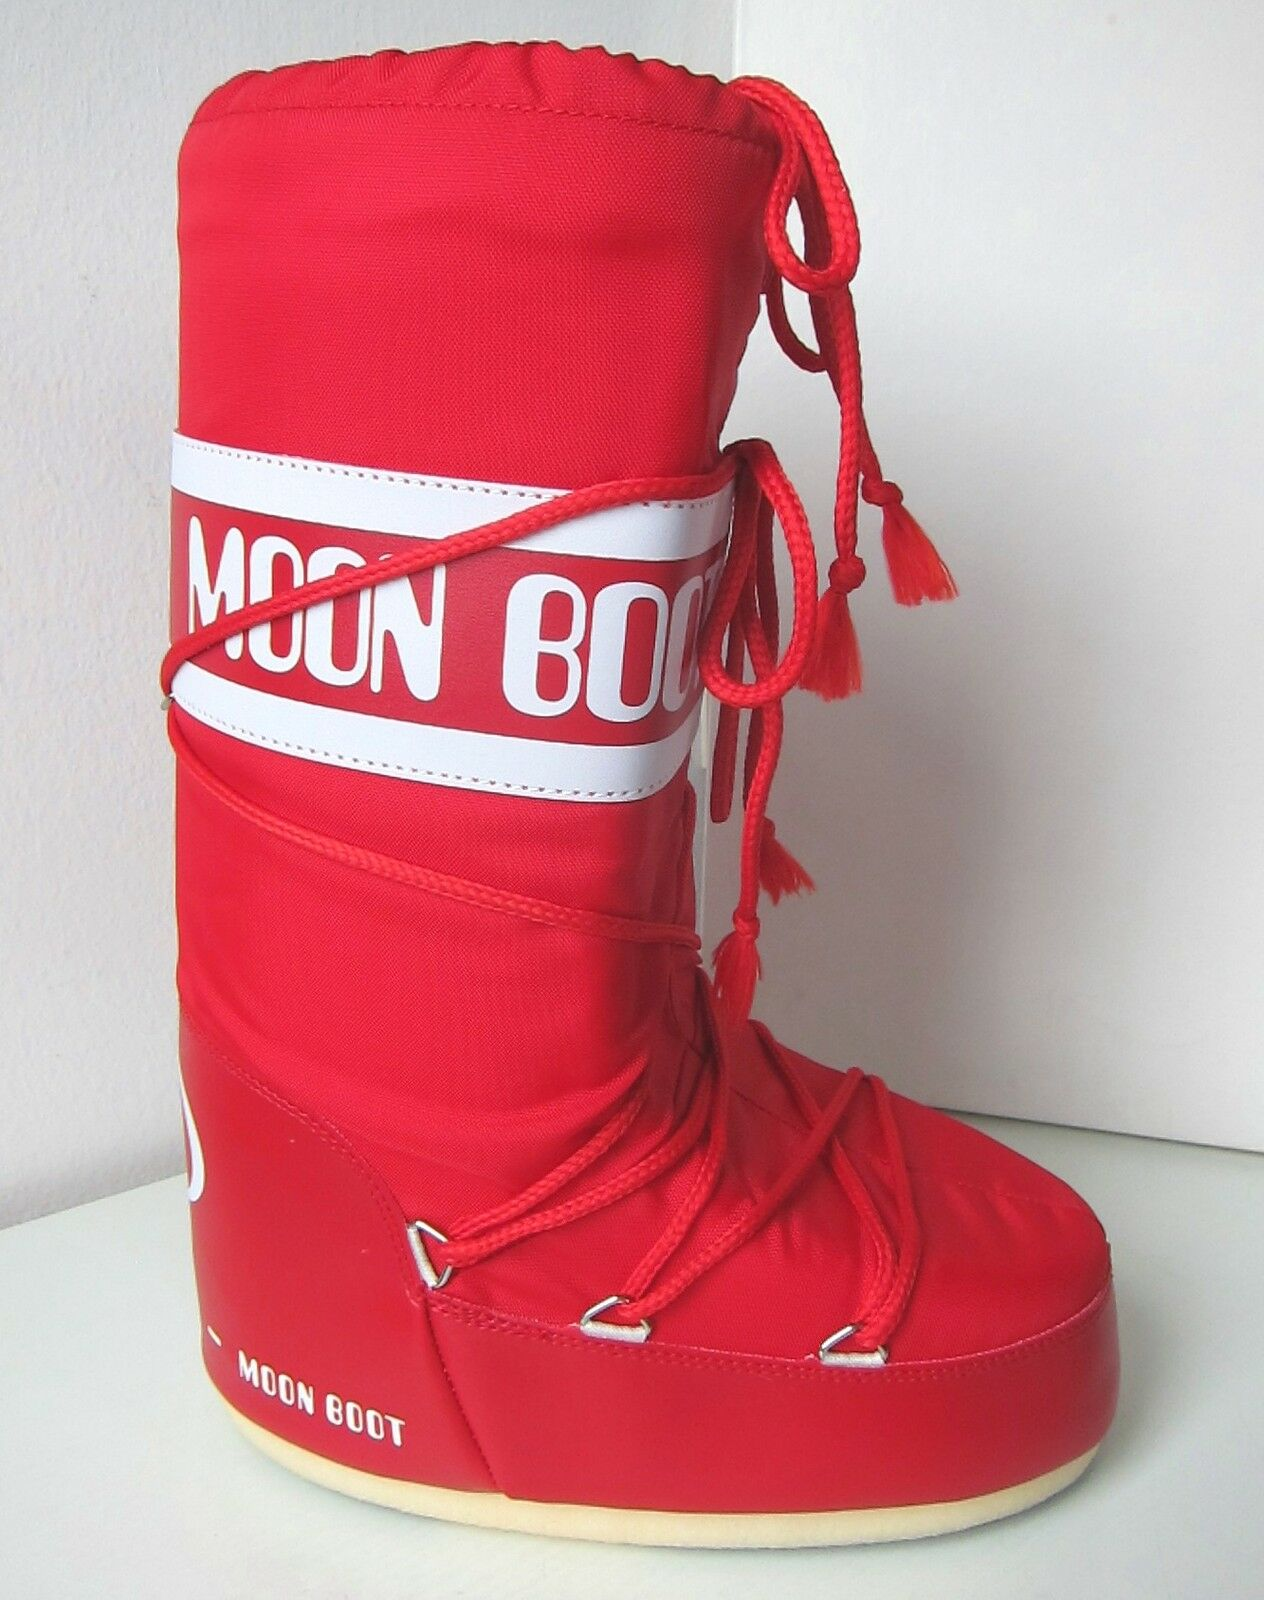 Tecnica MOON 31 BOOT Nylon rot Gr. 31 MOON - 34 Moon Boots Moonboots red 472da9